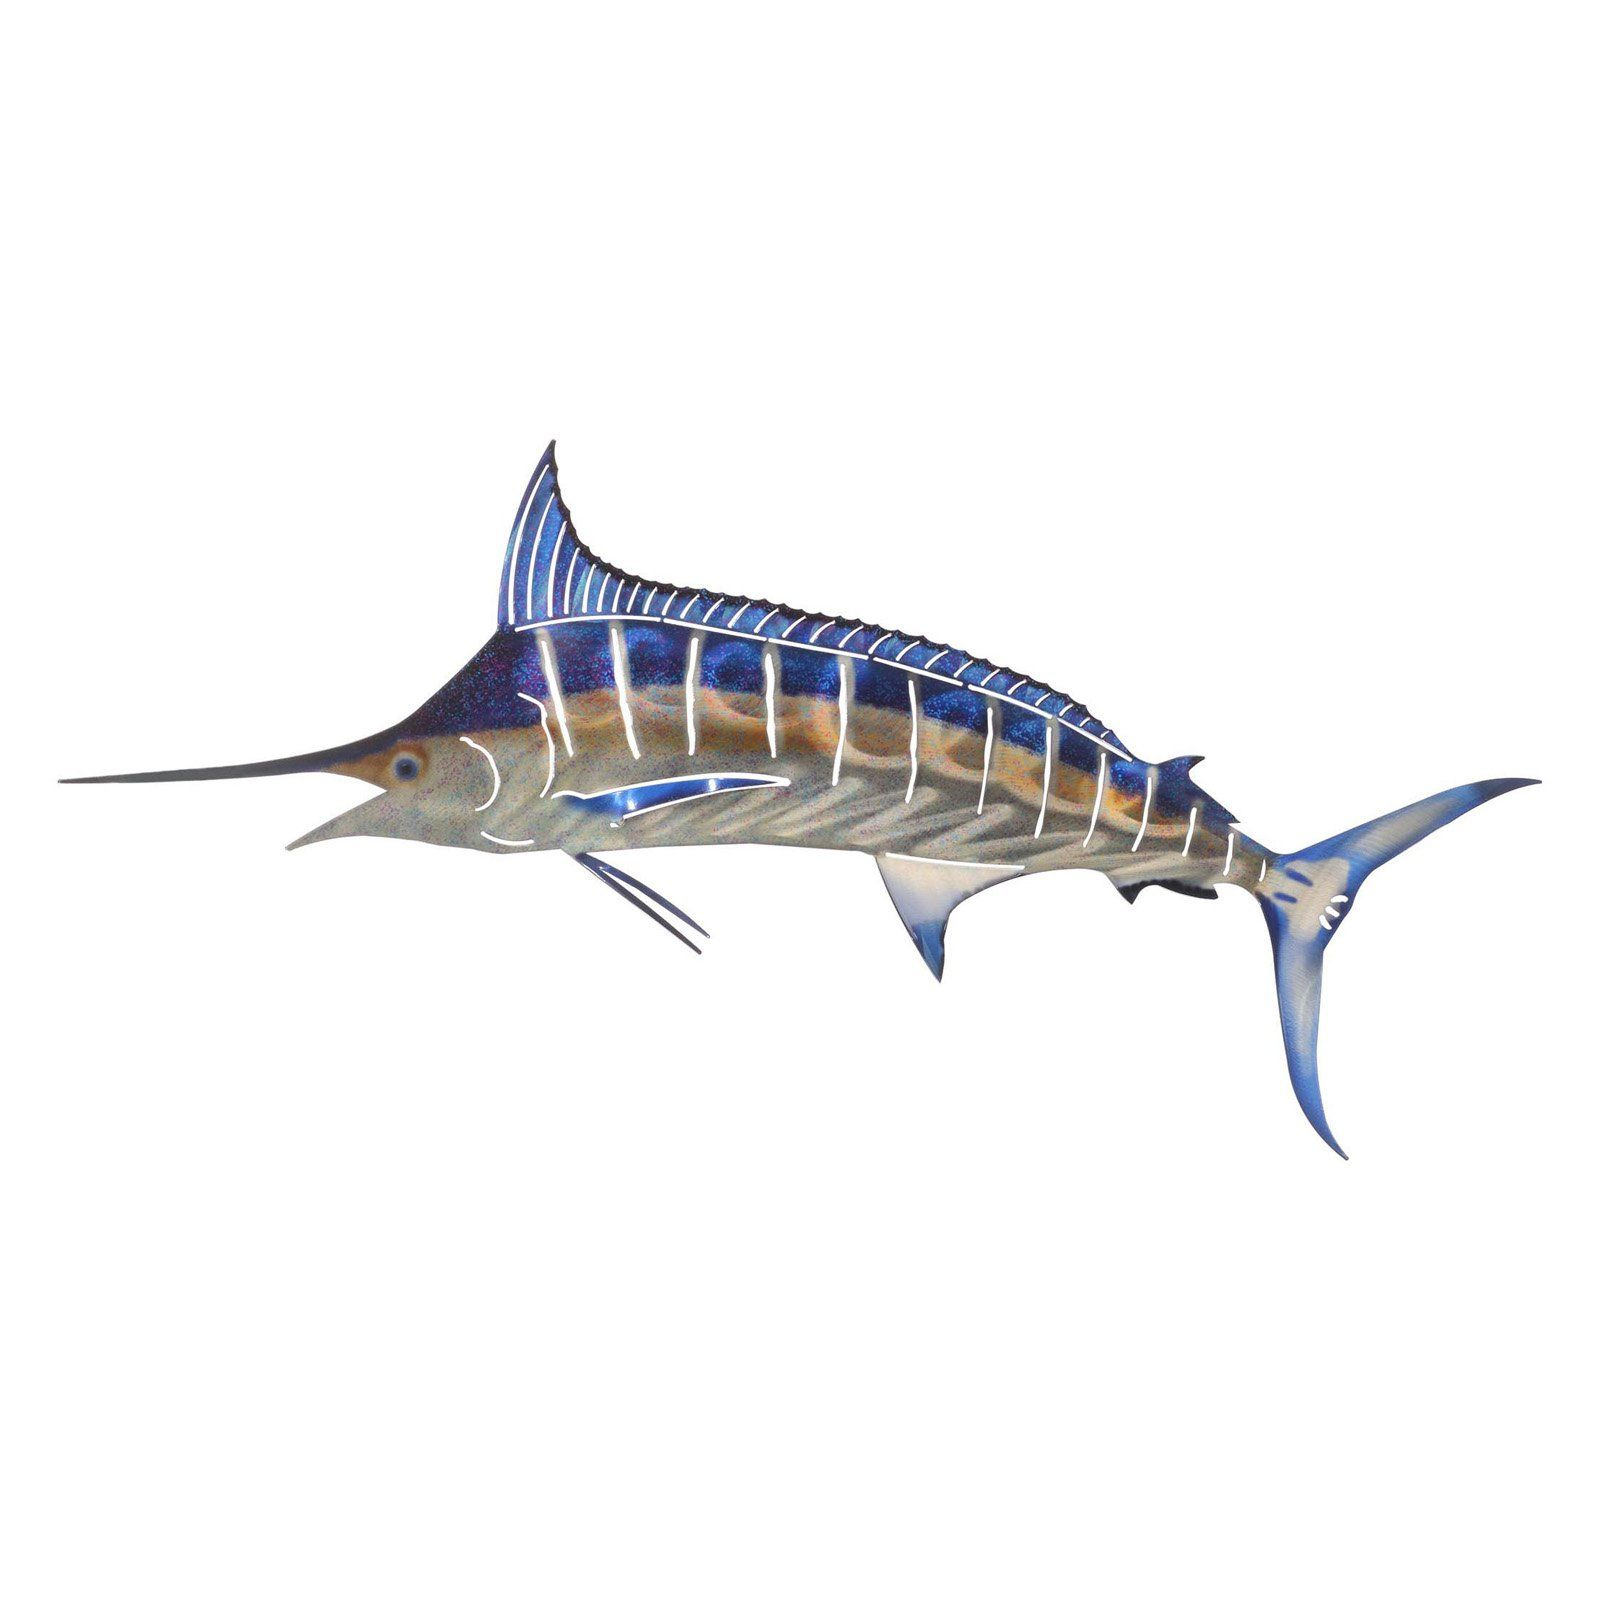 Next Innovations Marlin Wall Art - 101210013